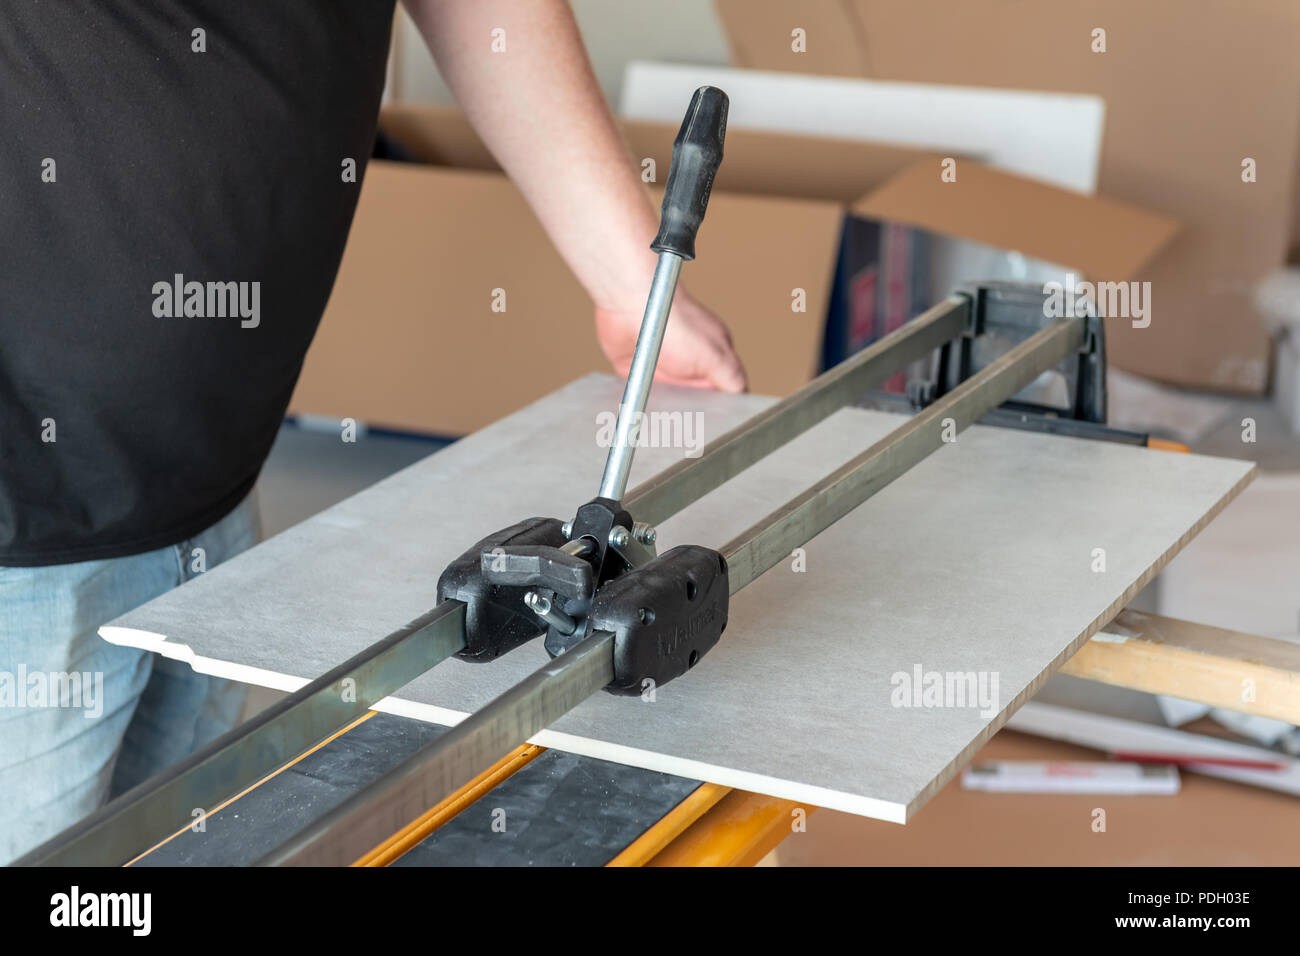 https www alamy com the man is cutting the floor tiles using a tile cutter machine image214888226 html